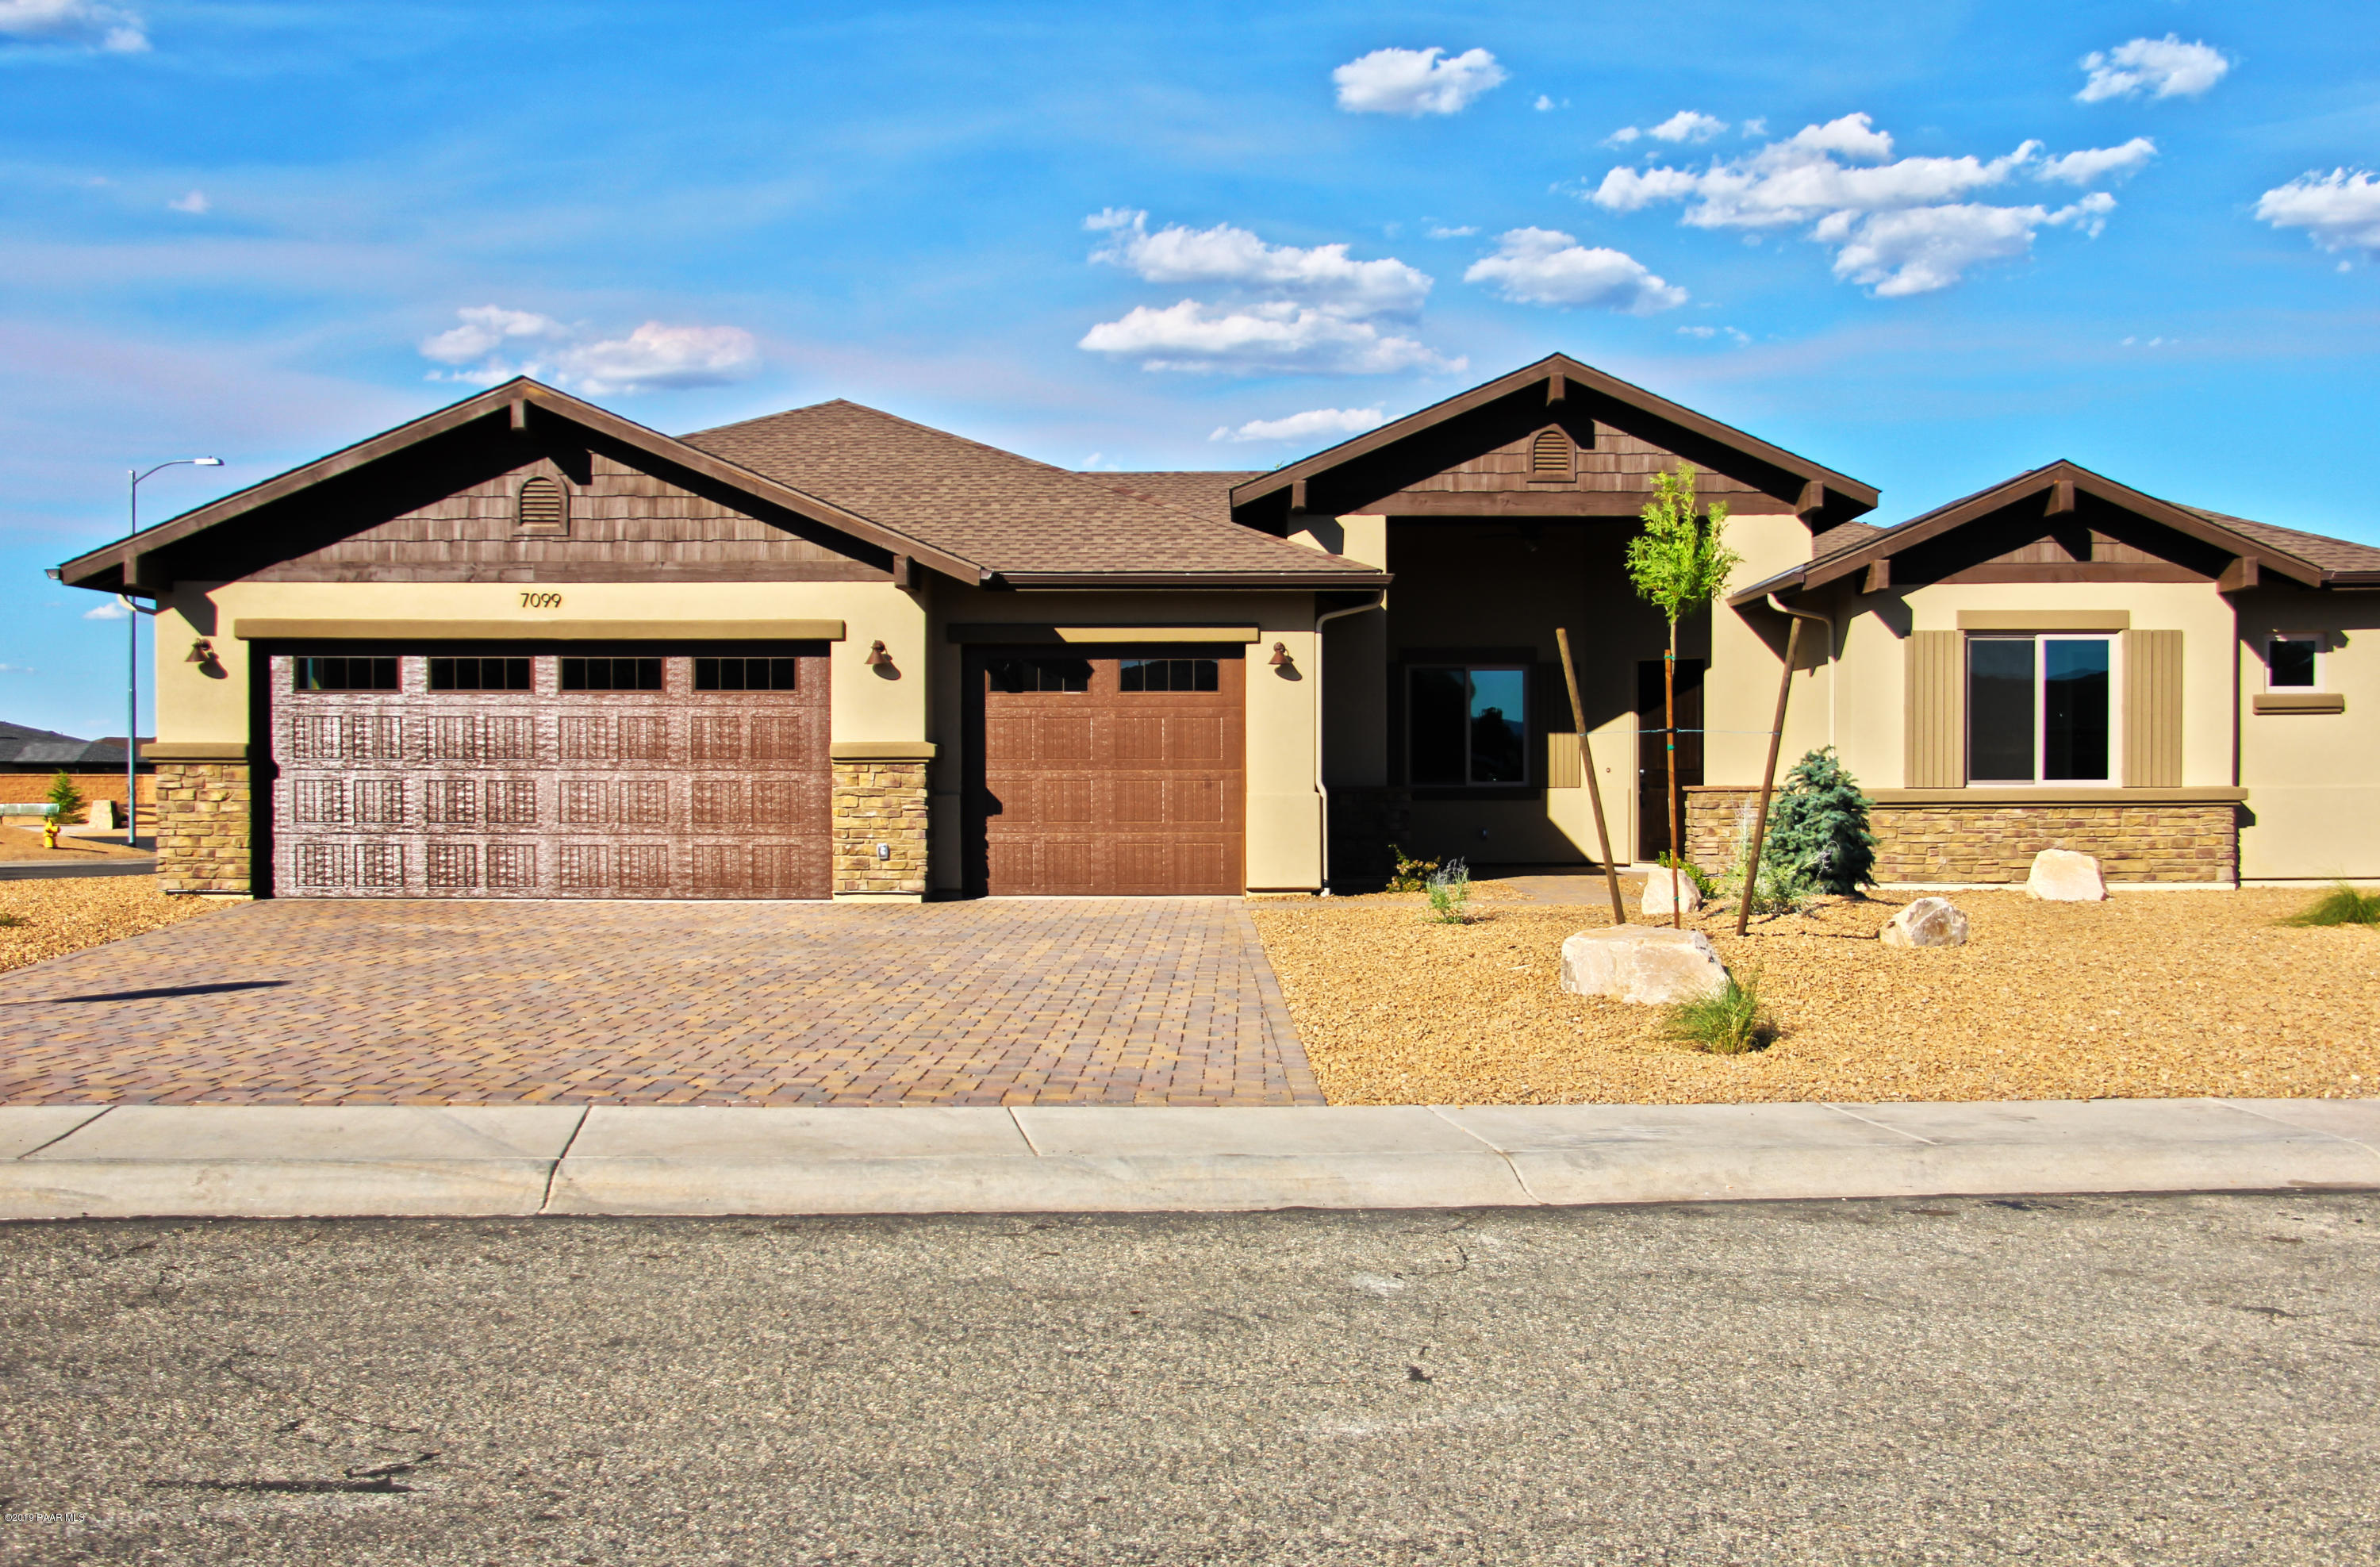 7099 N Windy Walk Way, Prescott Valley, Arizona